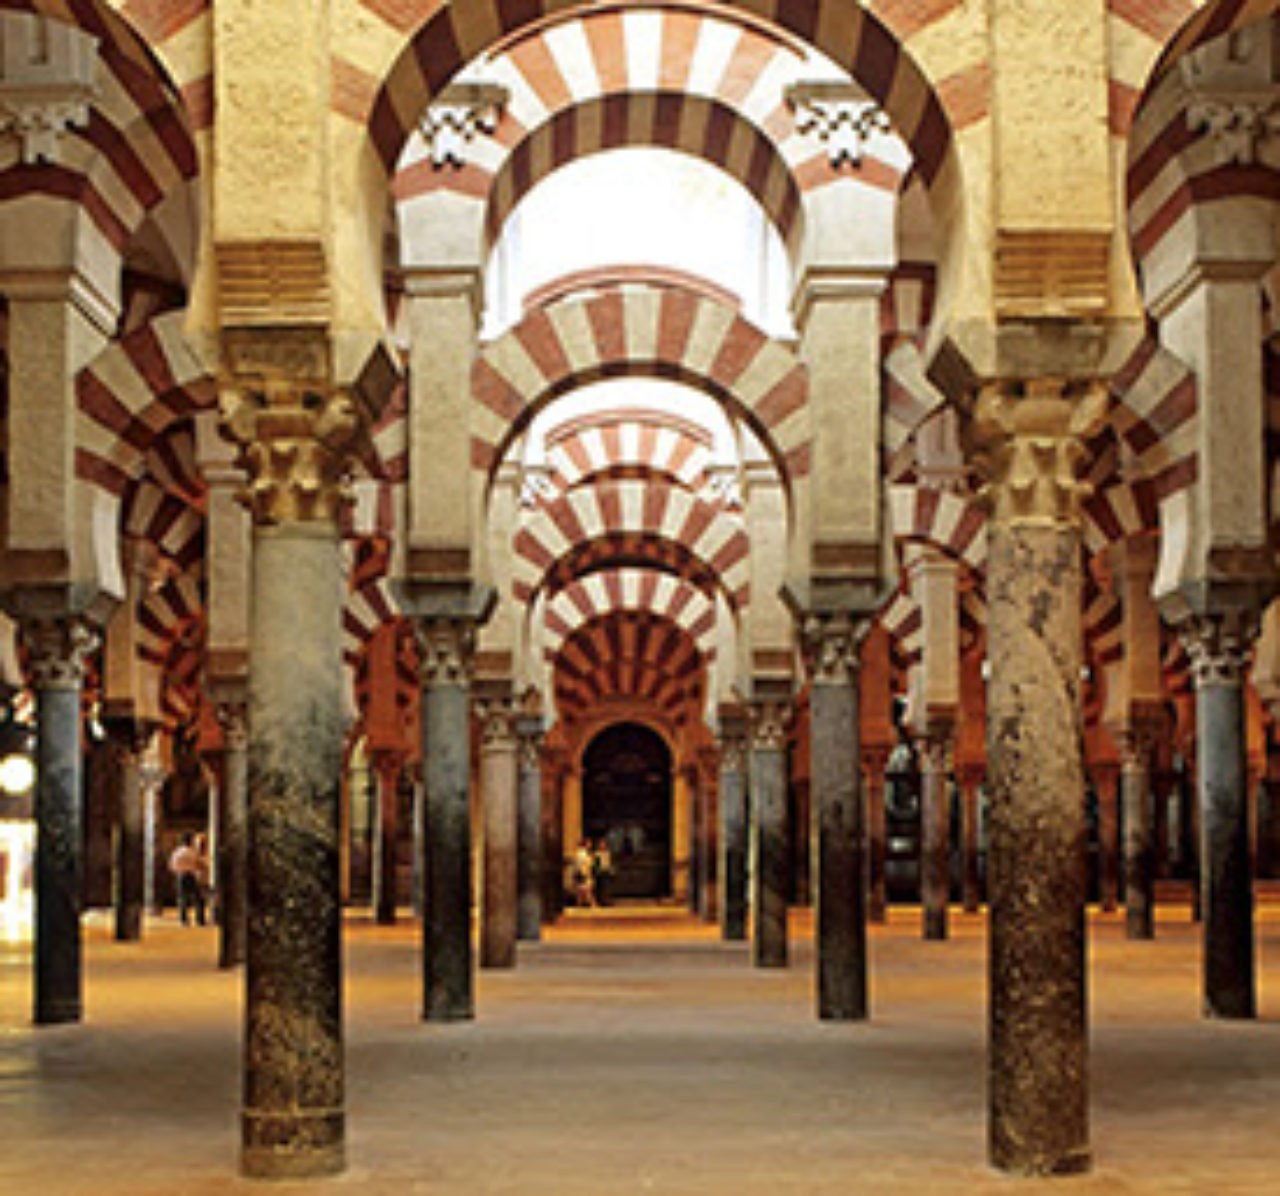 Mosque of Córdoba (Photo: Lani Summerville)